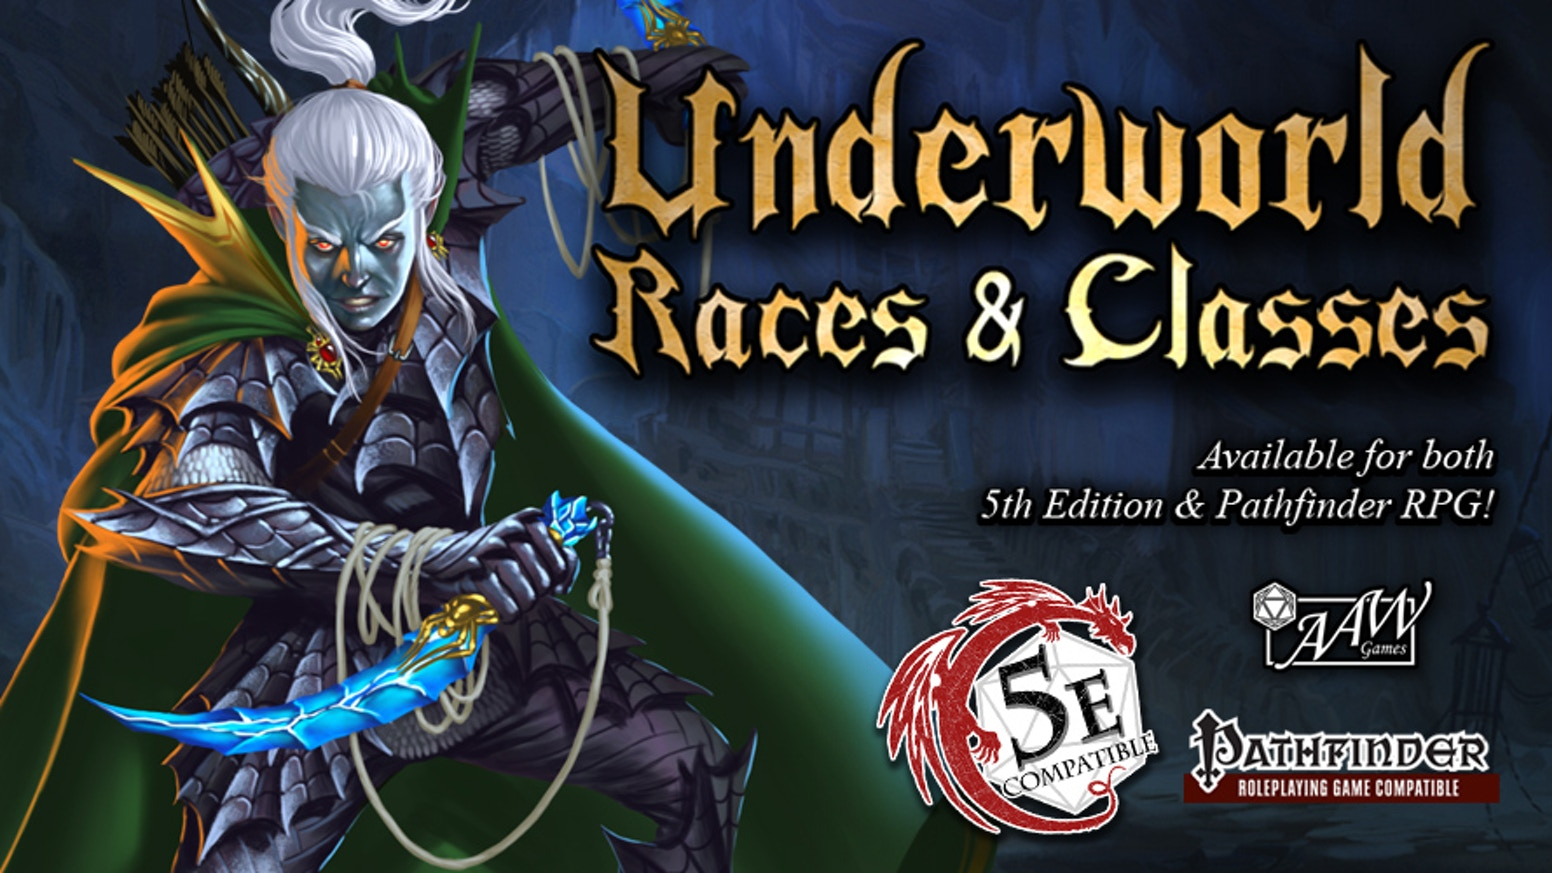 Thank you for helping us put our Underworld Races & Classes into a massive tome with new racial traits, feats, archetypes, magic items, and spells!